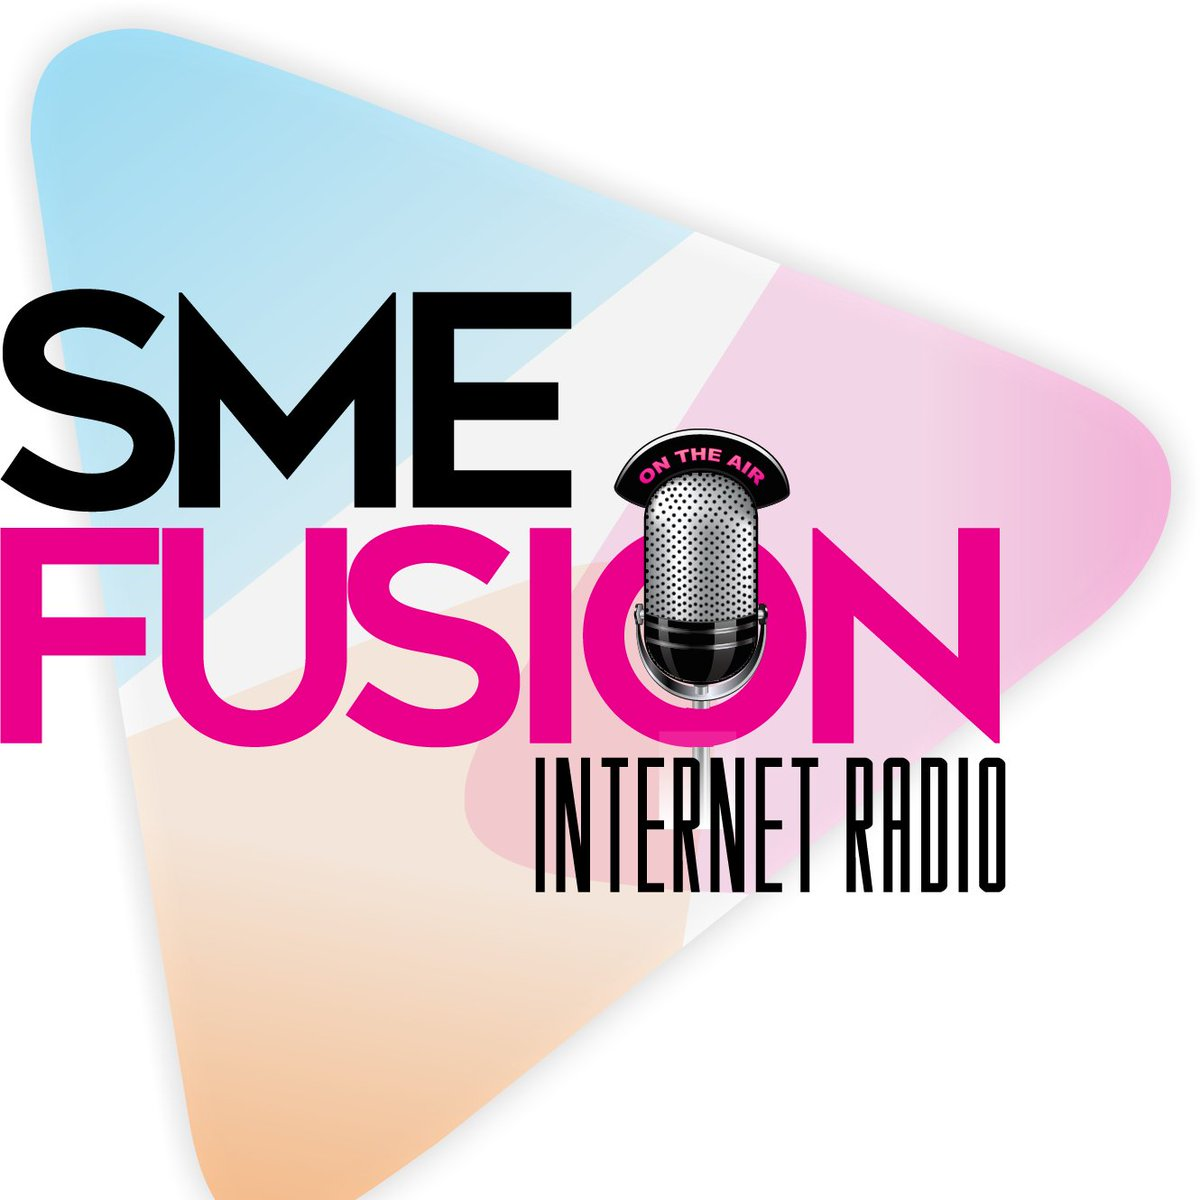 Listen to RADIO SME FUSION (South Africa)! You can listen to my music, for example on 16th of October you listened to NEW PARADISE!  https://t.co/SX8jpLcS8O  #newsong#music#song#newmusic#love#rap#hiphop#songs#instagood#instamusic#goodmusic#pop#singer#bestsong https://t.co/BXFVwbSeVc